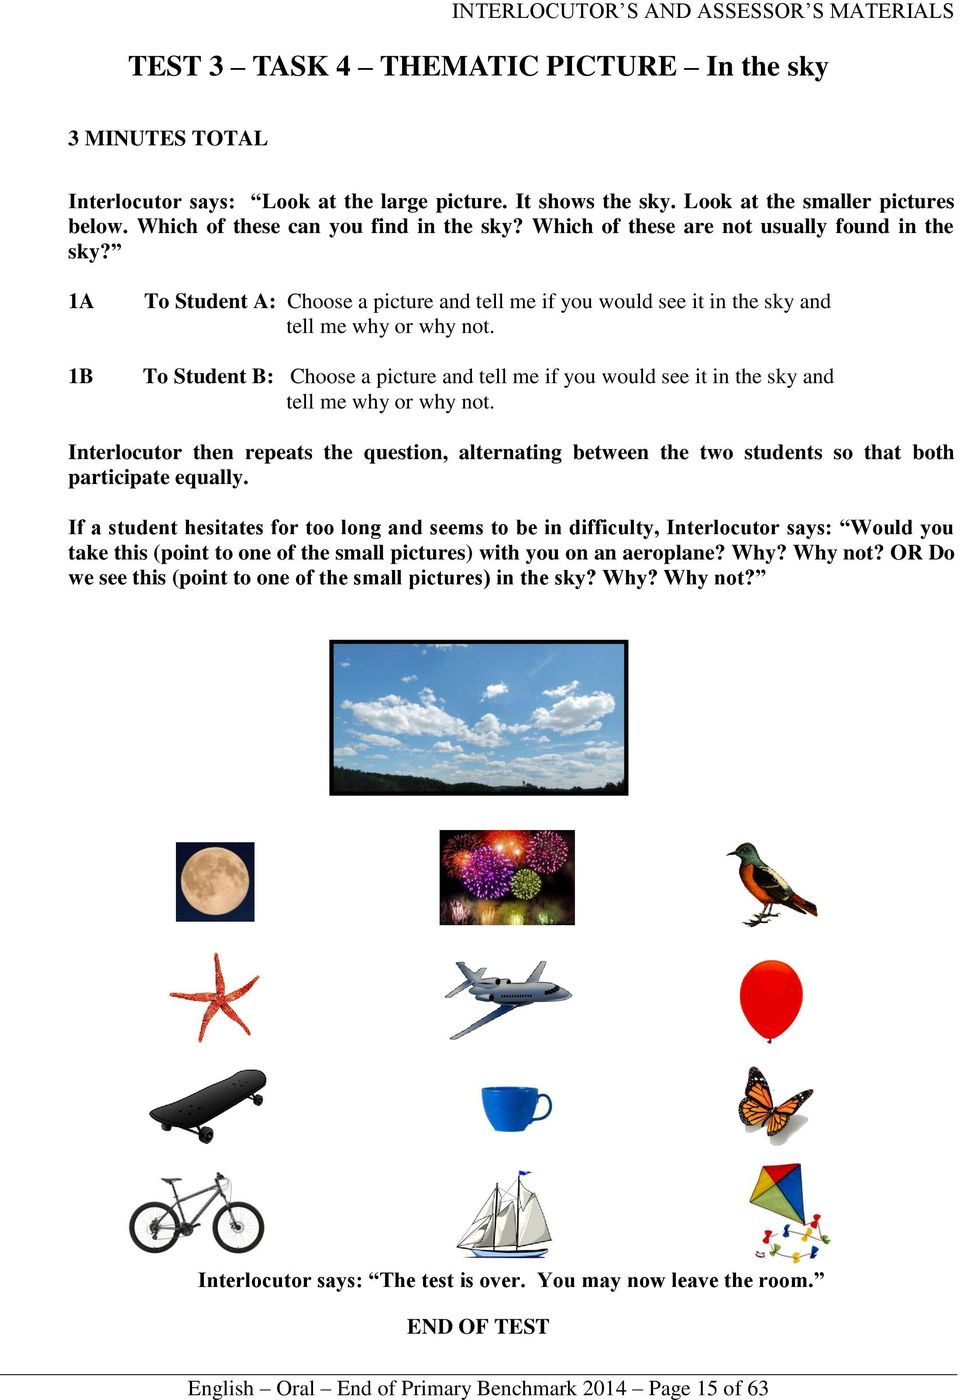 To Student B: Choose a picture and tell me if you would see it in the sky and tell me why or why not.